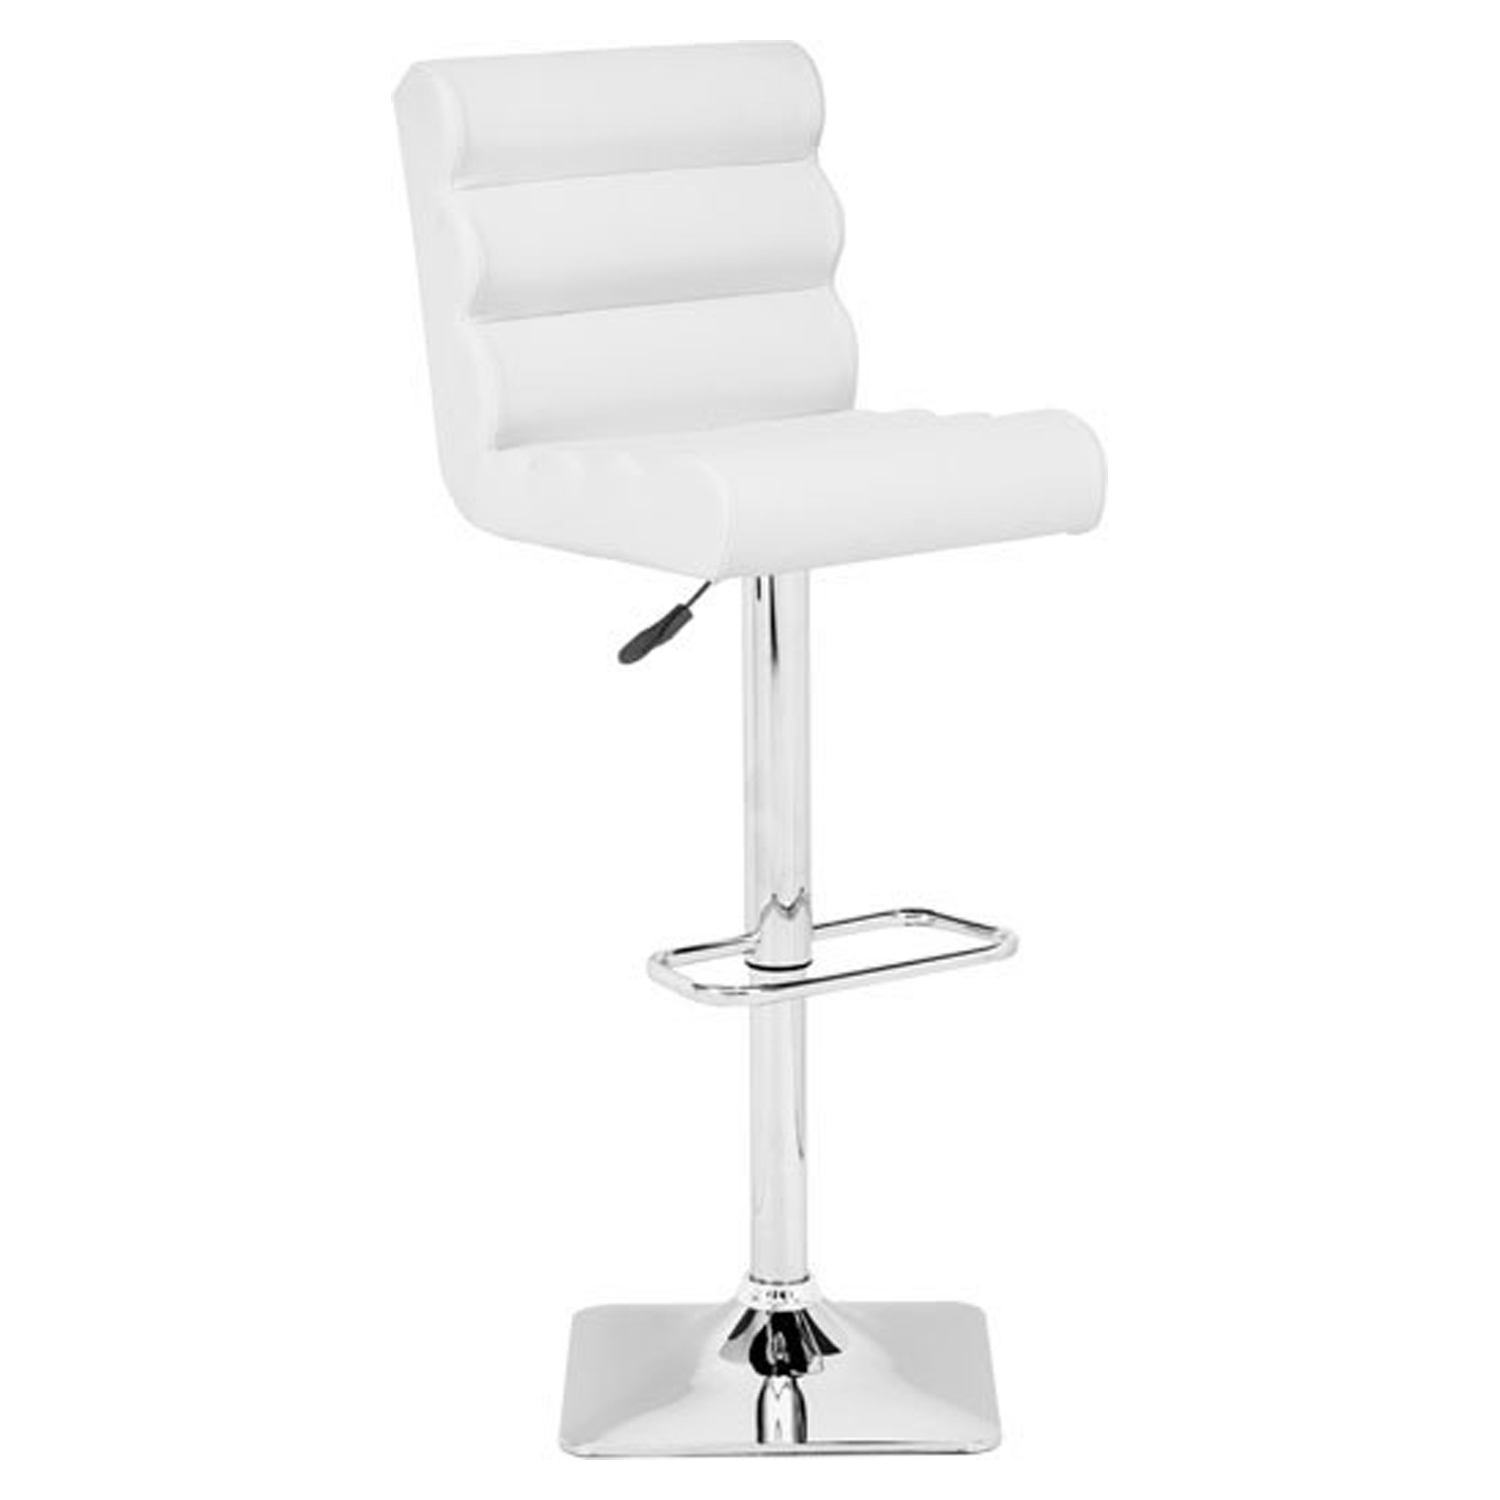 Nitro Bar Chair - Adjustable, White